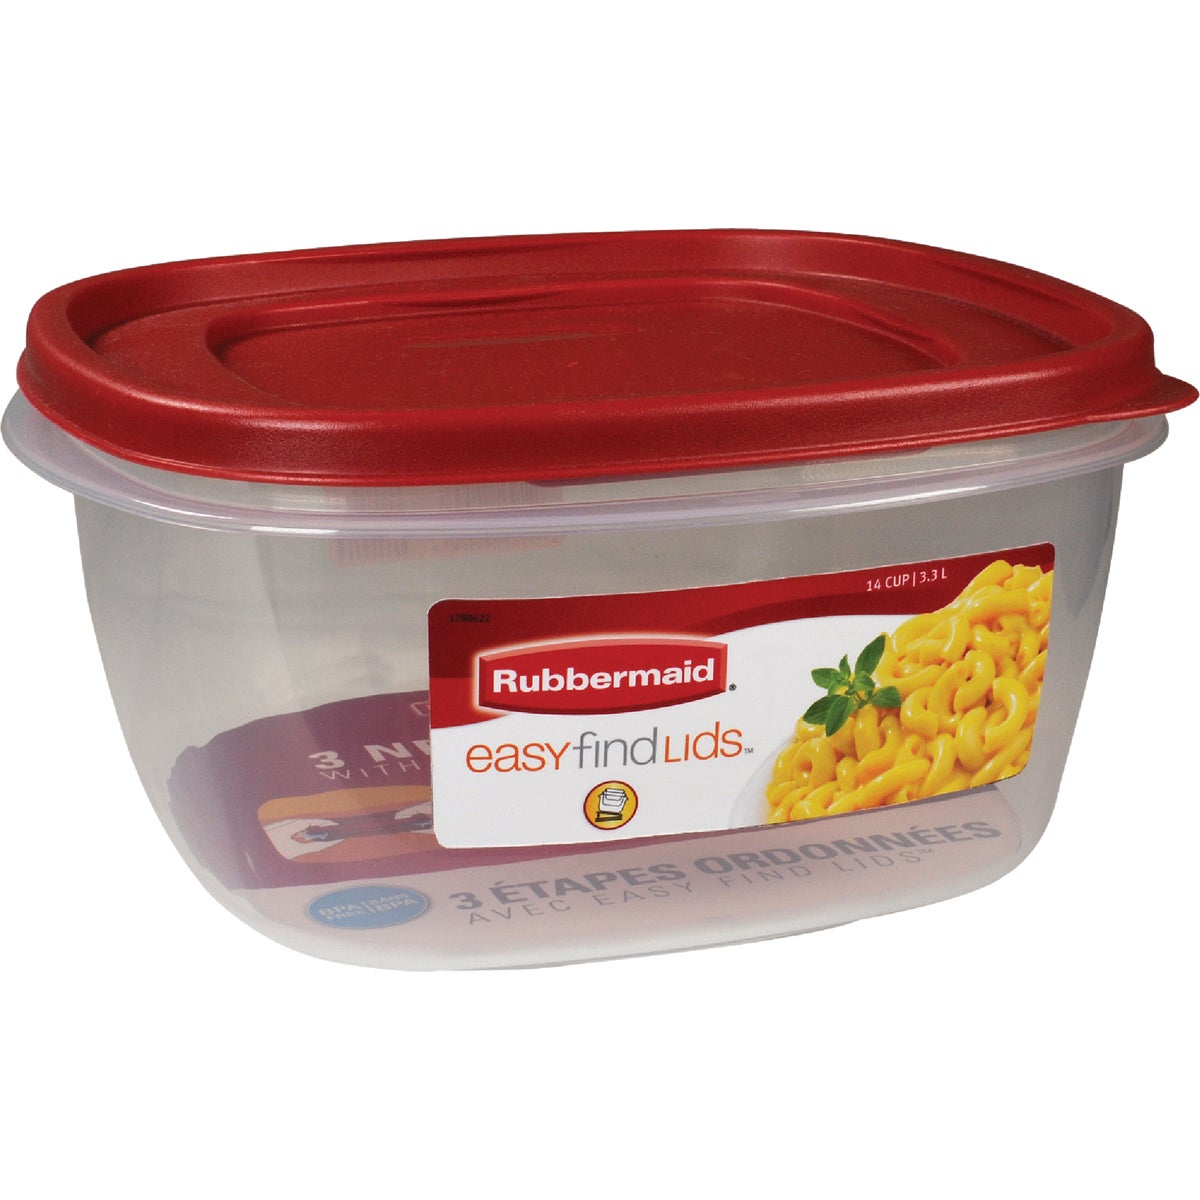 14 CUP FOOD CONTAINER - 1777161 by Rubbermaid Home